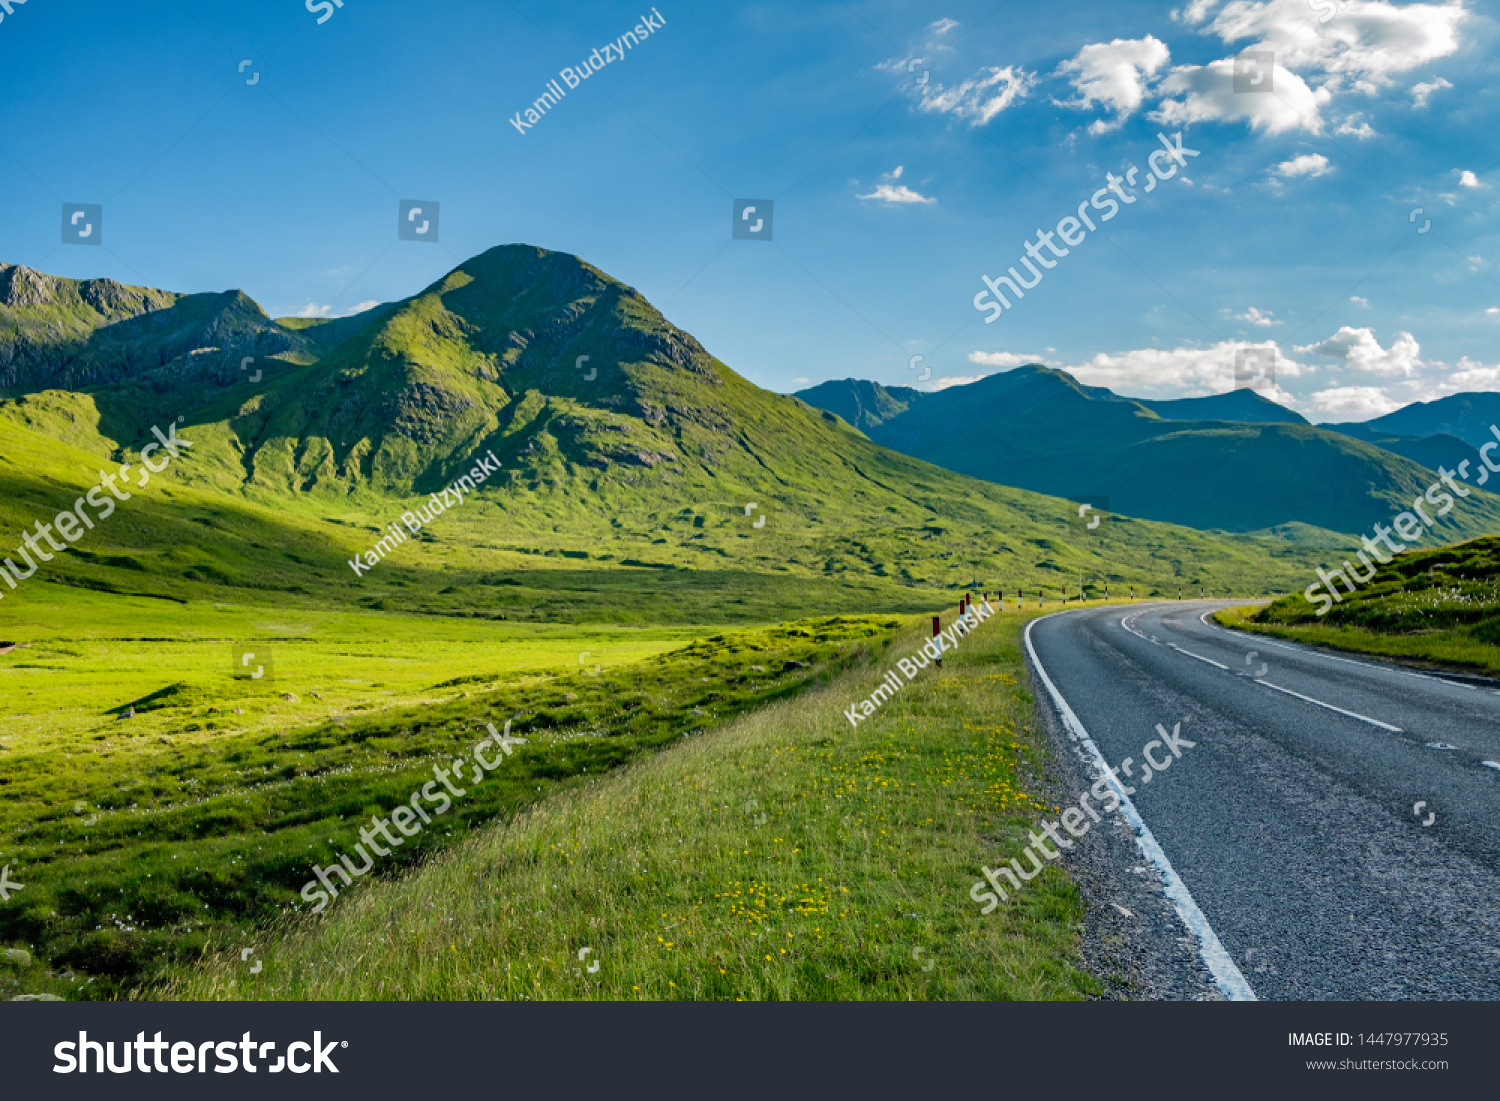 Road turning right with green hills and blue sky with white clouds, Highlands, Scotland, United Kingdom